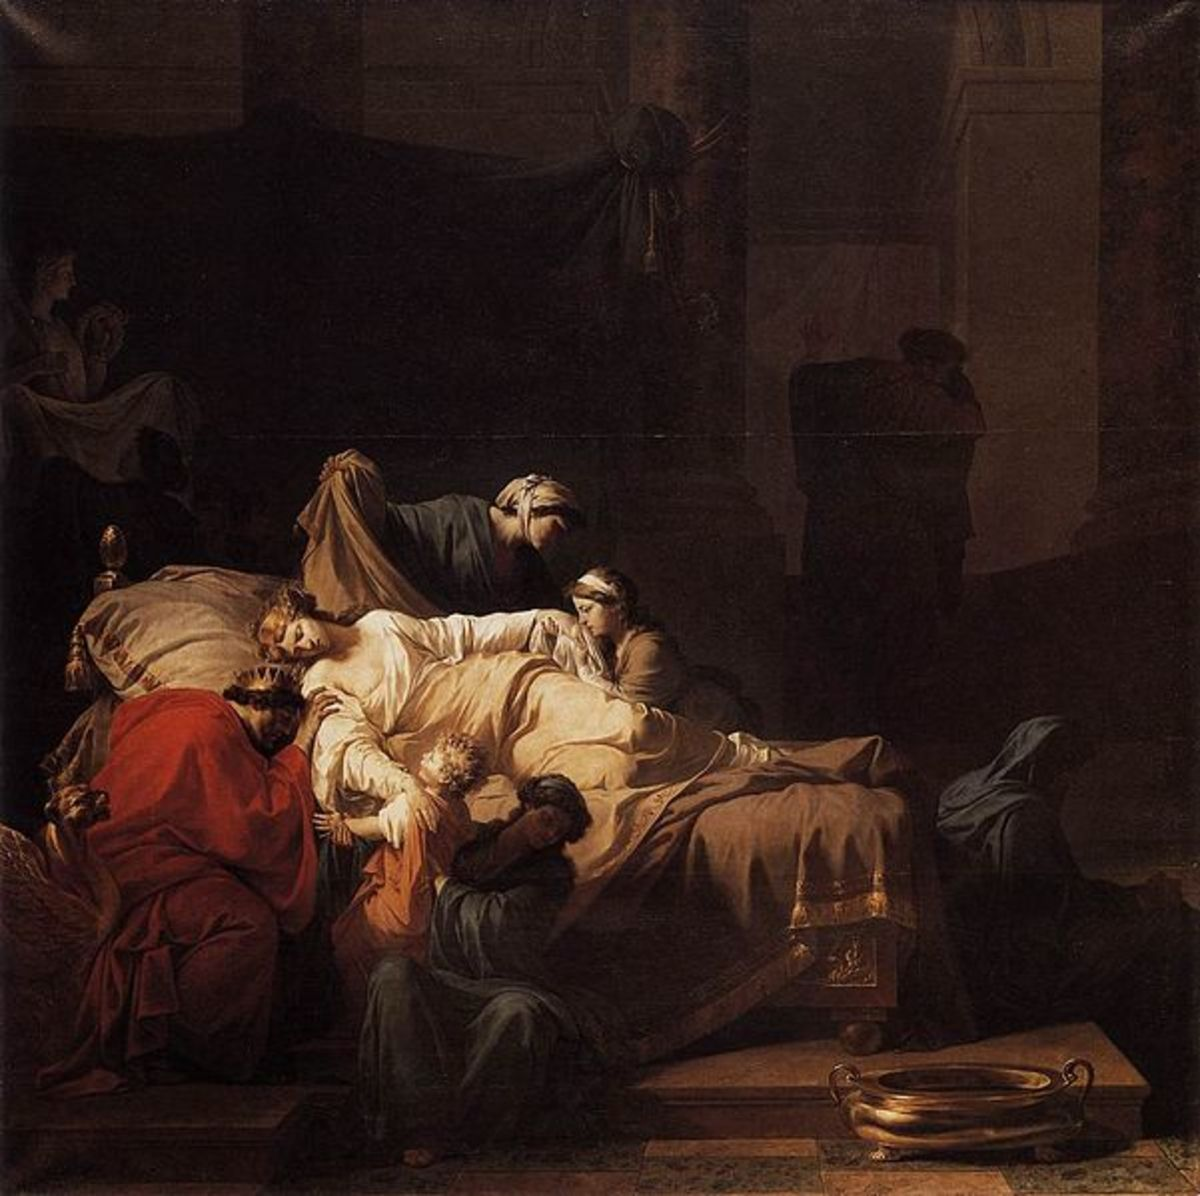 The Death of Alcestis by Jean-Francois-Pierre Peyron, 1785